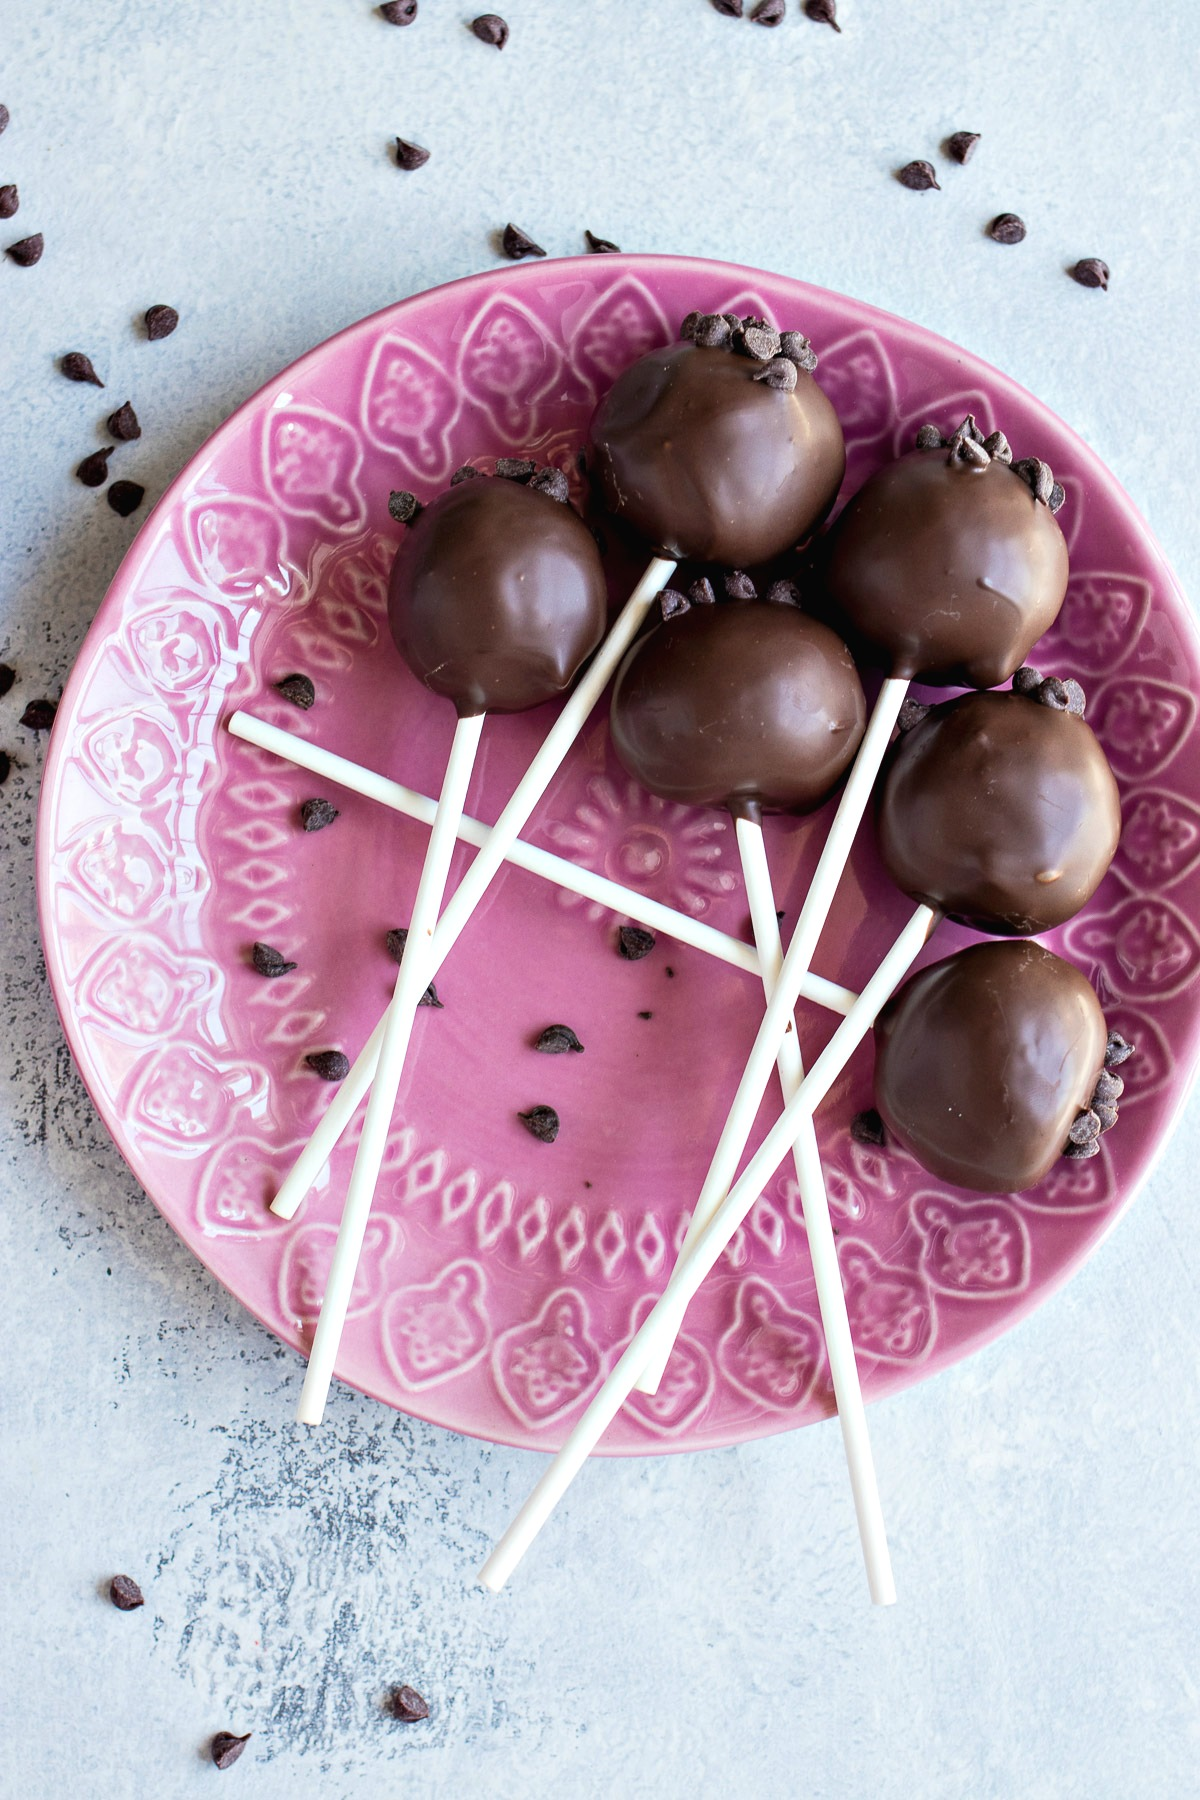 Chocolate Chip Cookie Cake Pops covered in melted chocolate and chocolate chips on a plate